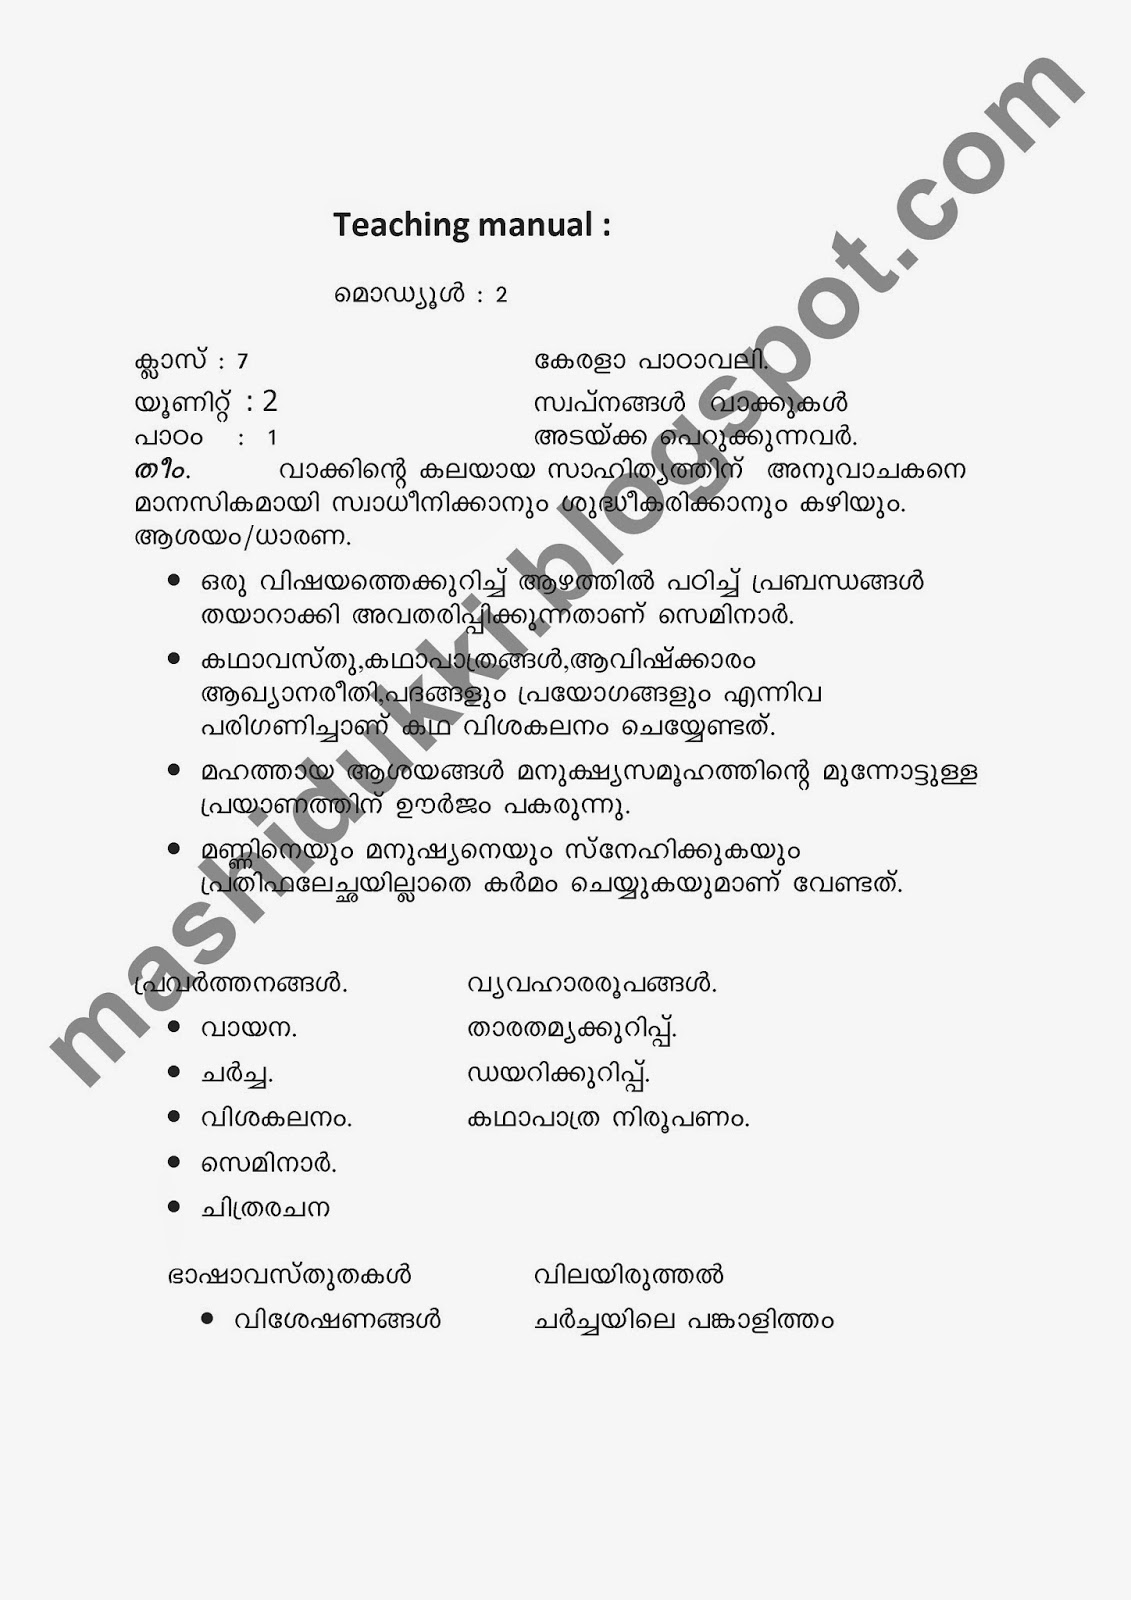 Malayalam Mash: Teaching manual malayalam std 7 unit-2